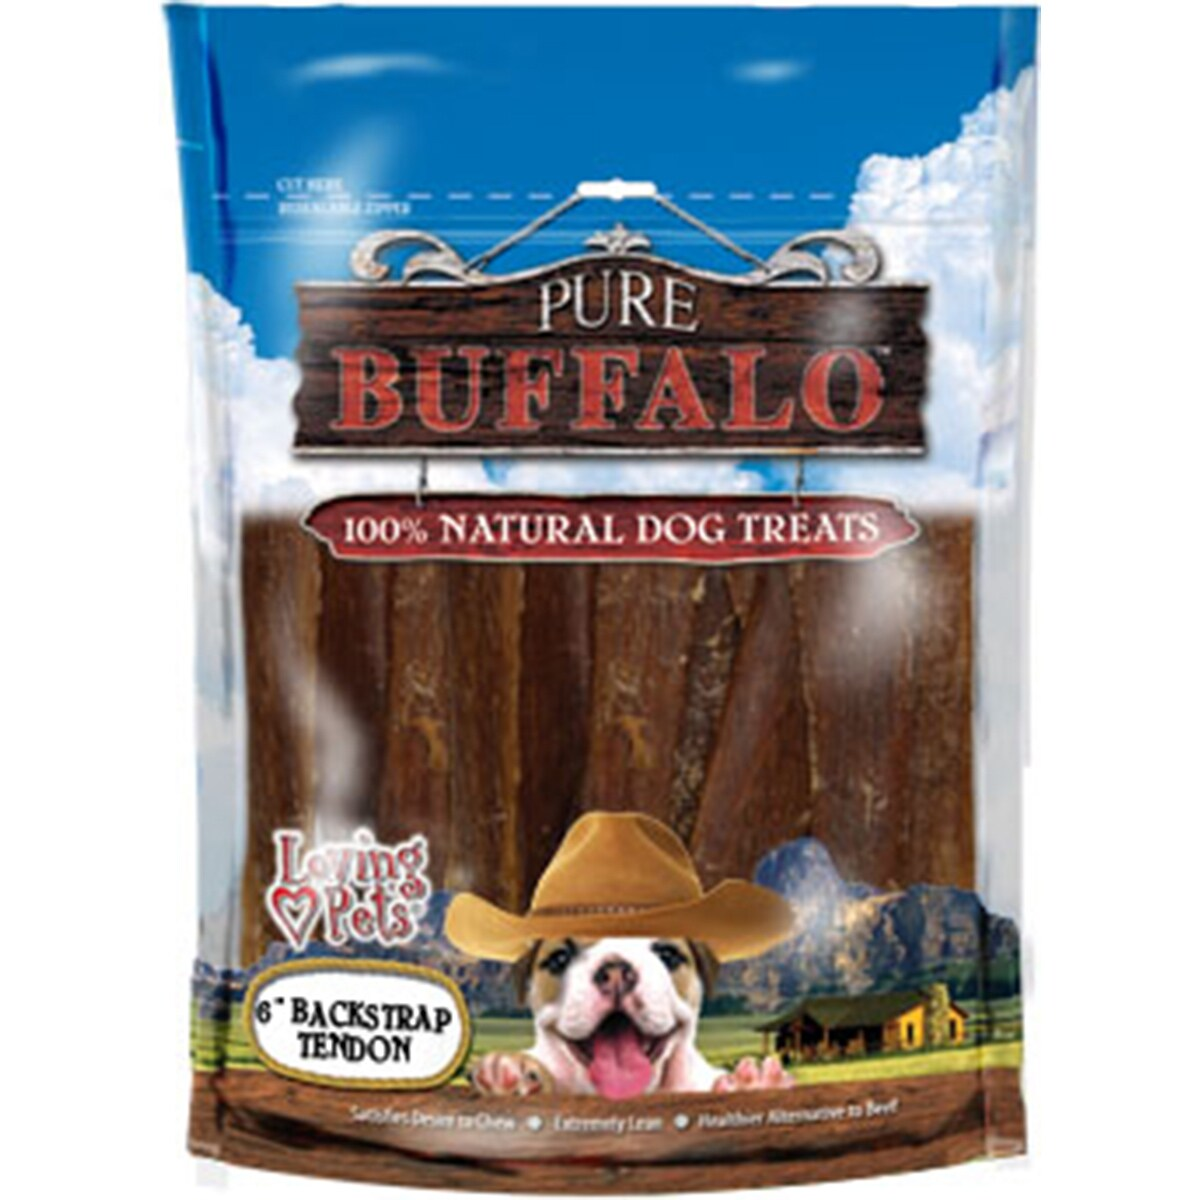 "Loving Pets Products Pure Buffalo 6"" Backstrap Tendon Dog..."